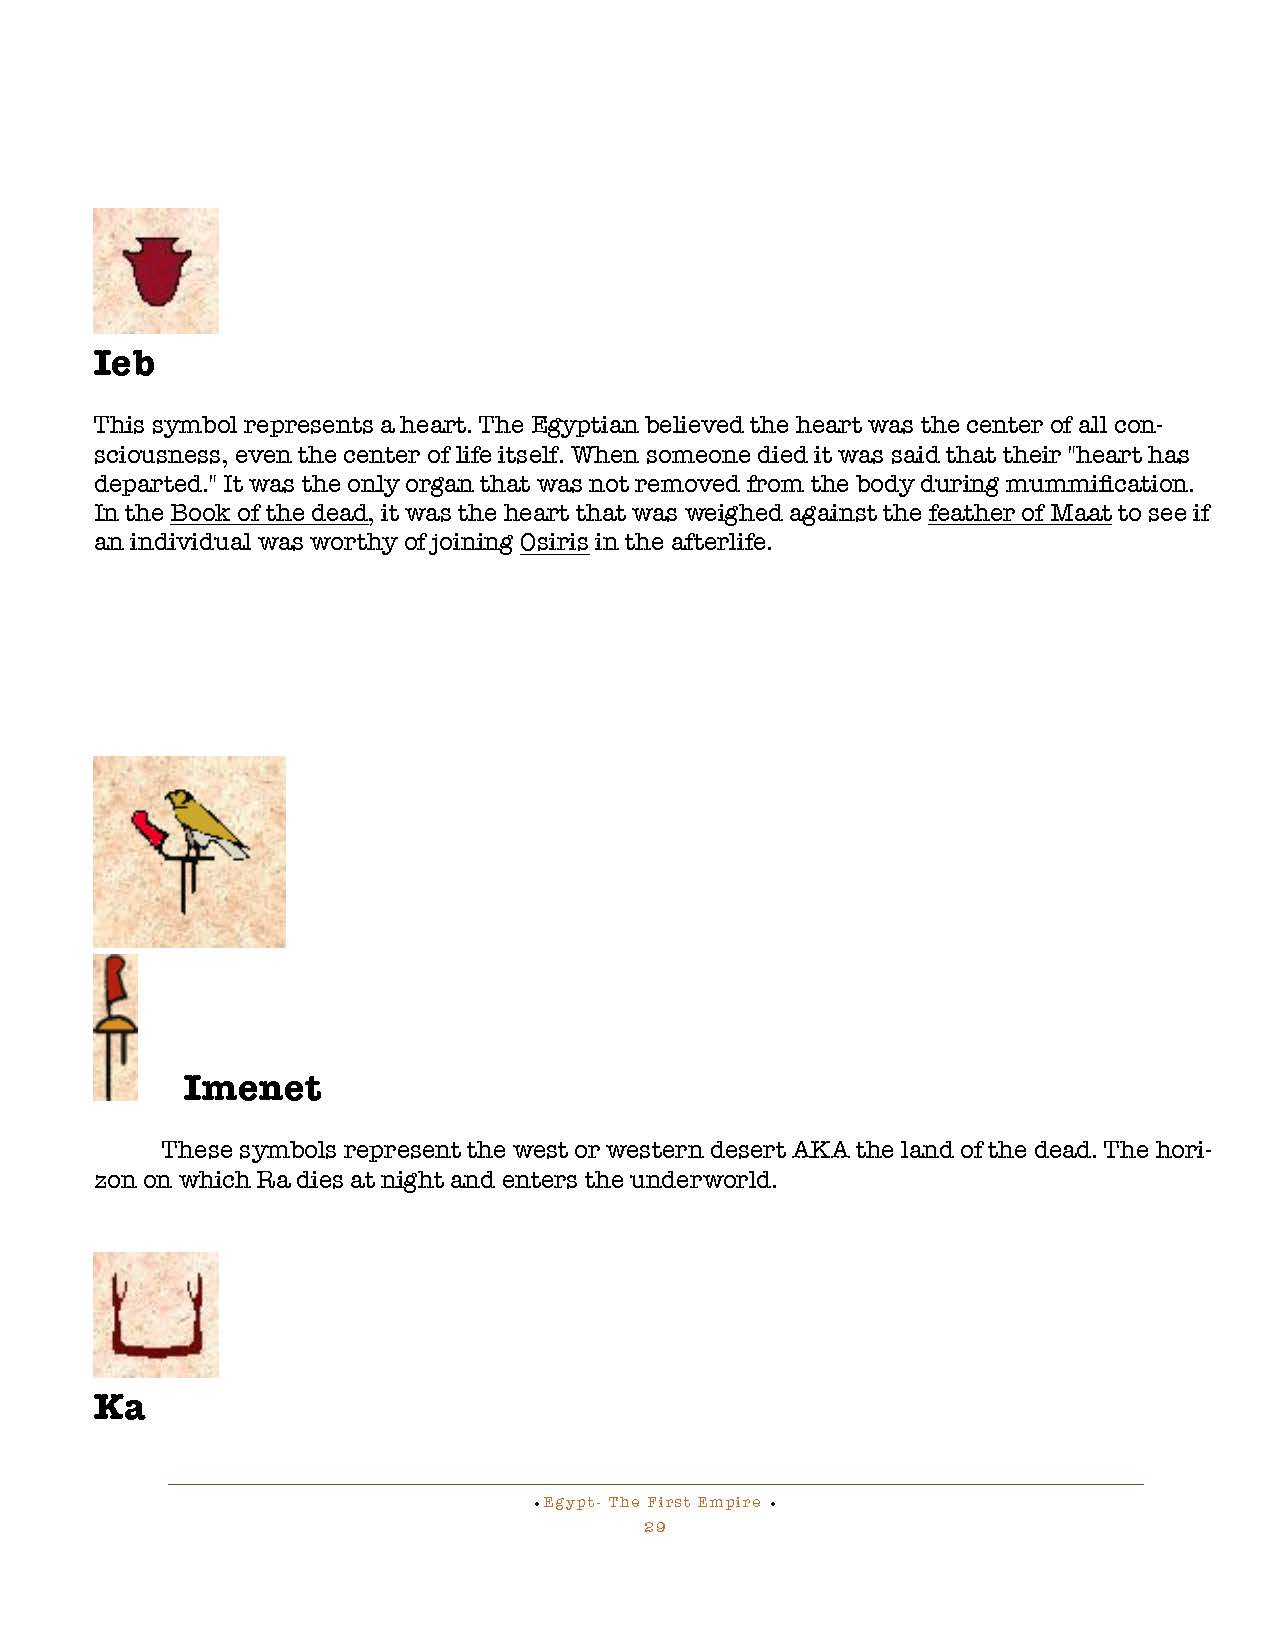 HOCE- Egypt  (First Empire) Notes_Page_029.jpg